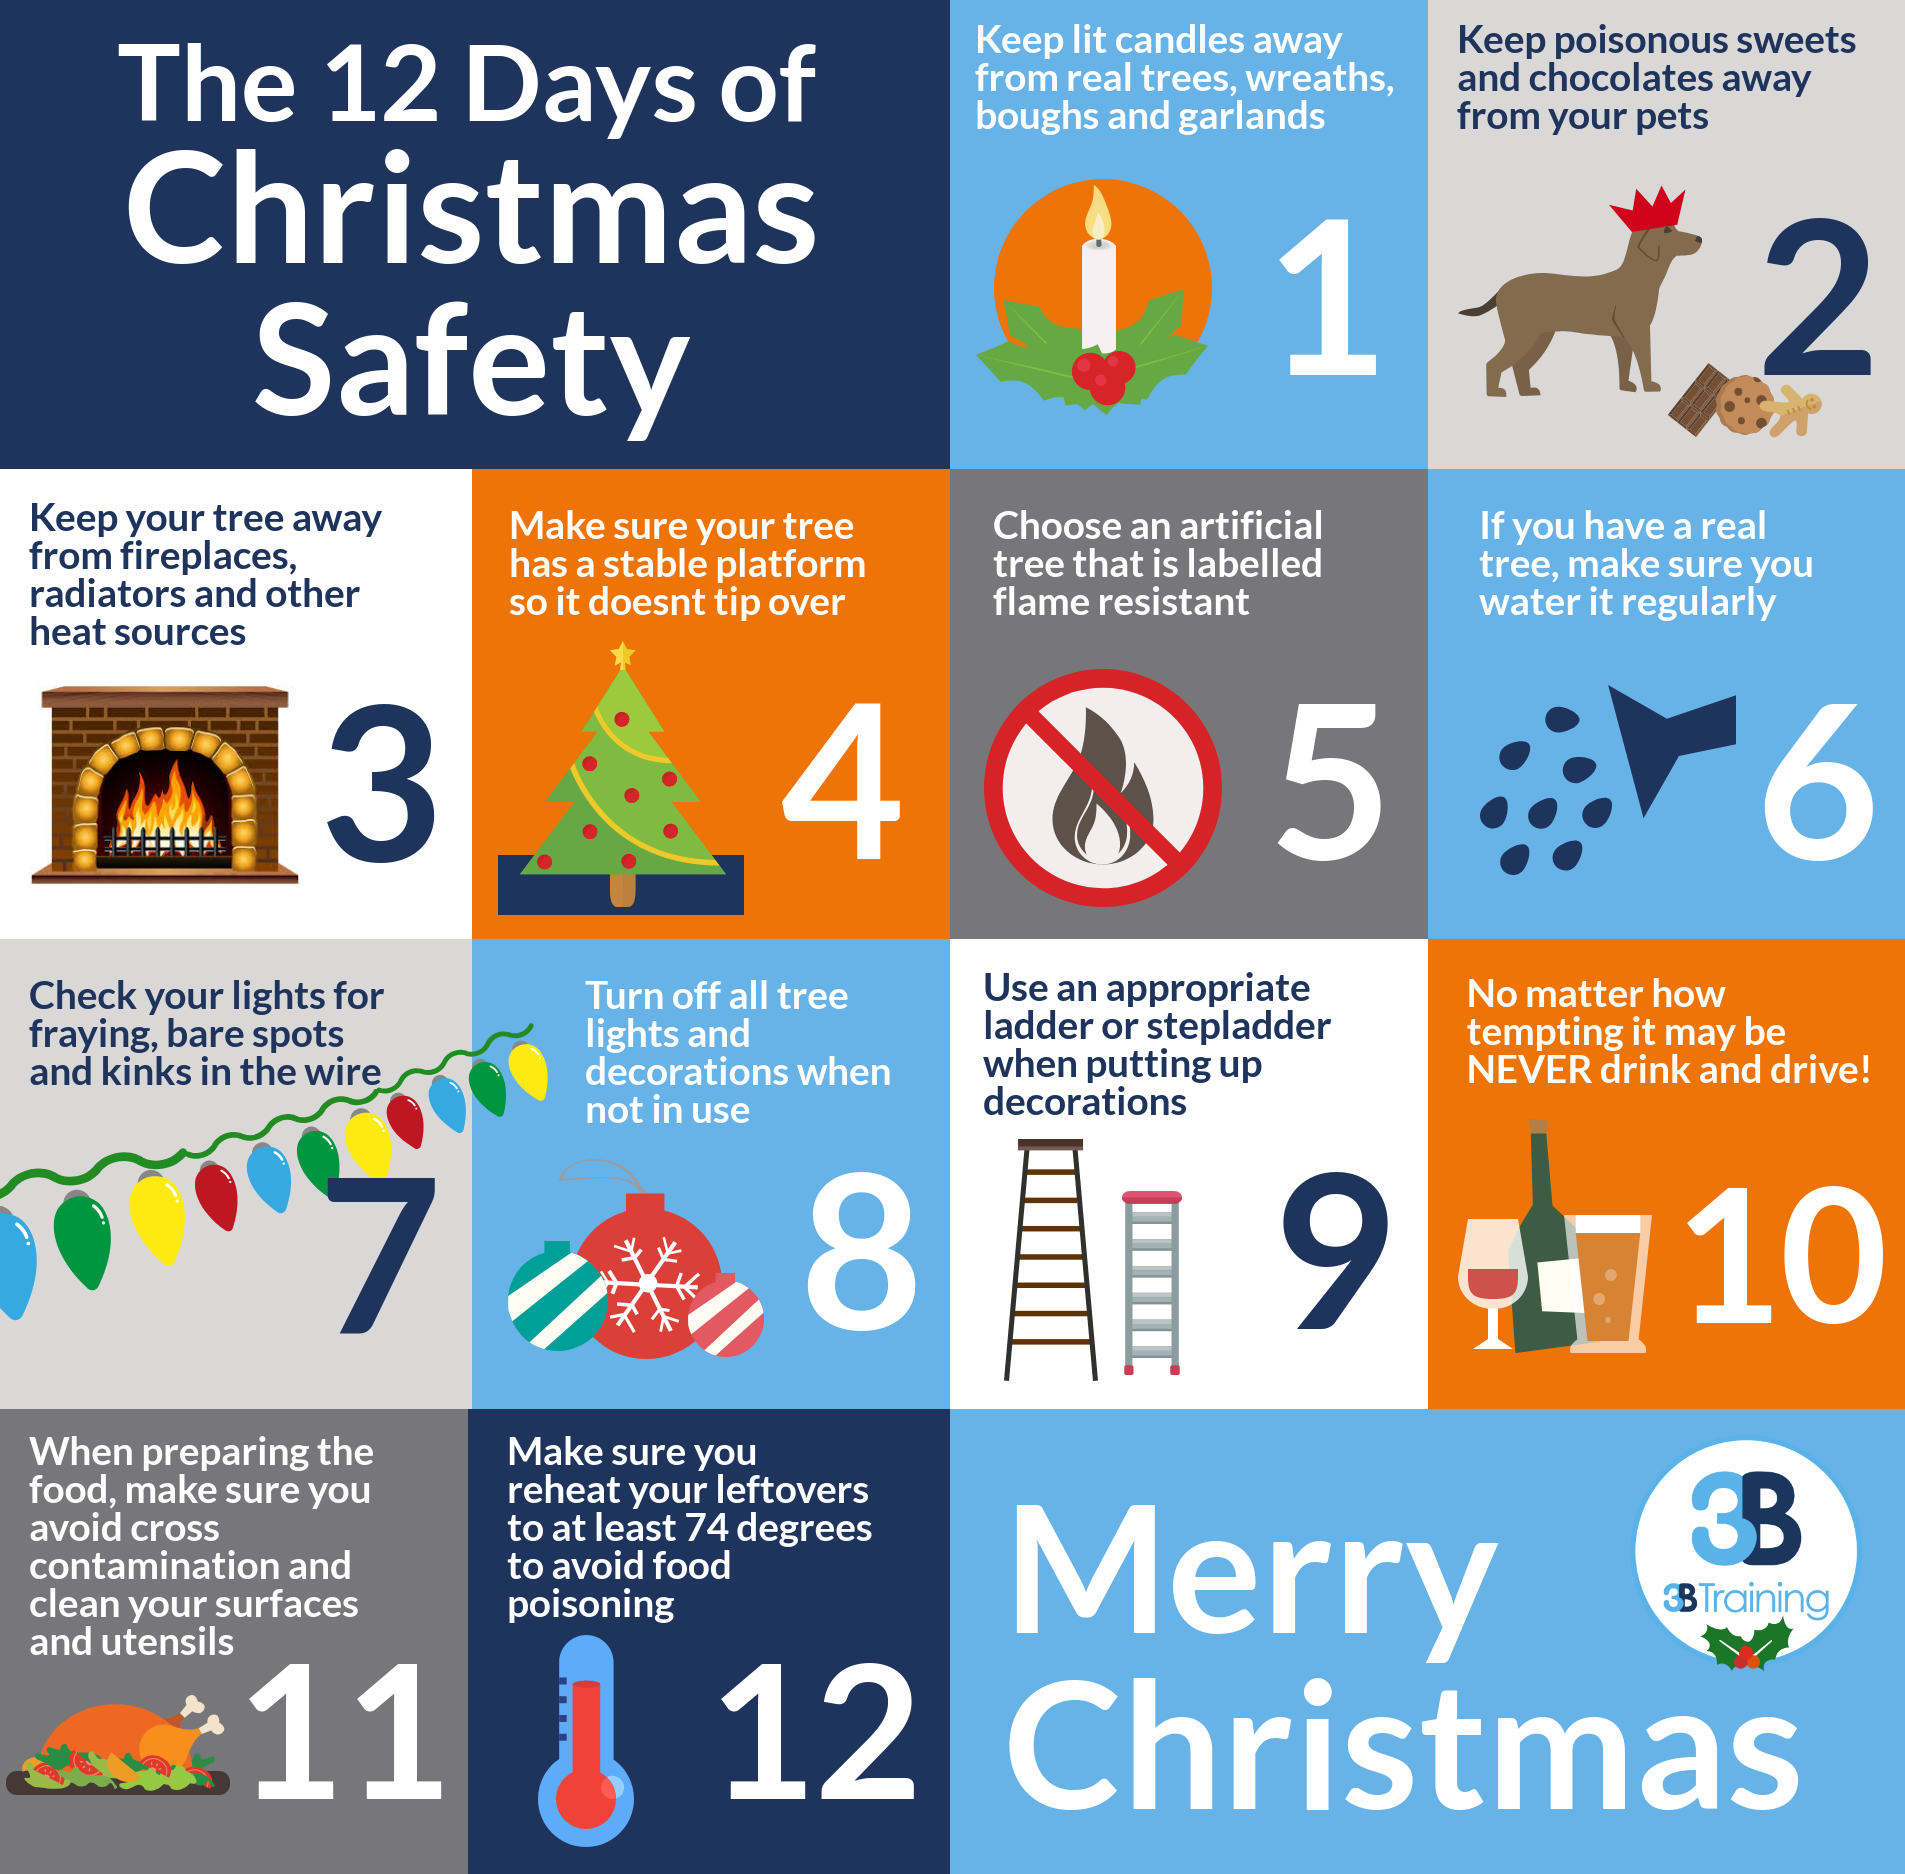 On the 12 Days of Christmas, my true love gave to me… 12